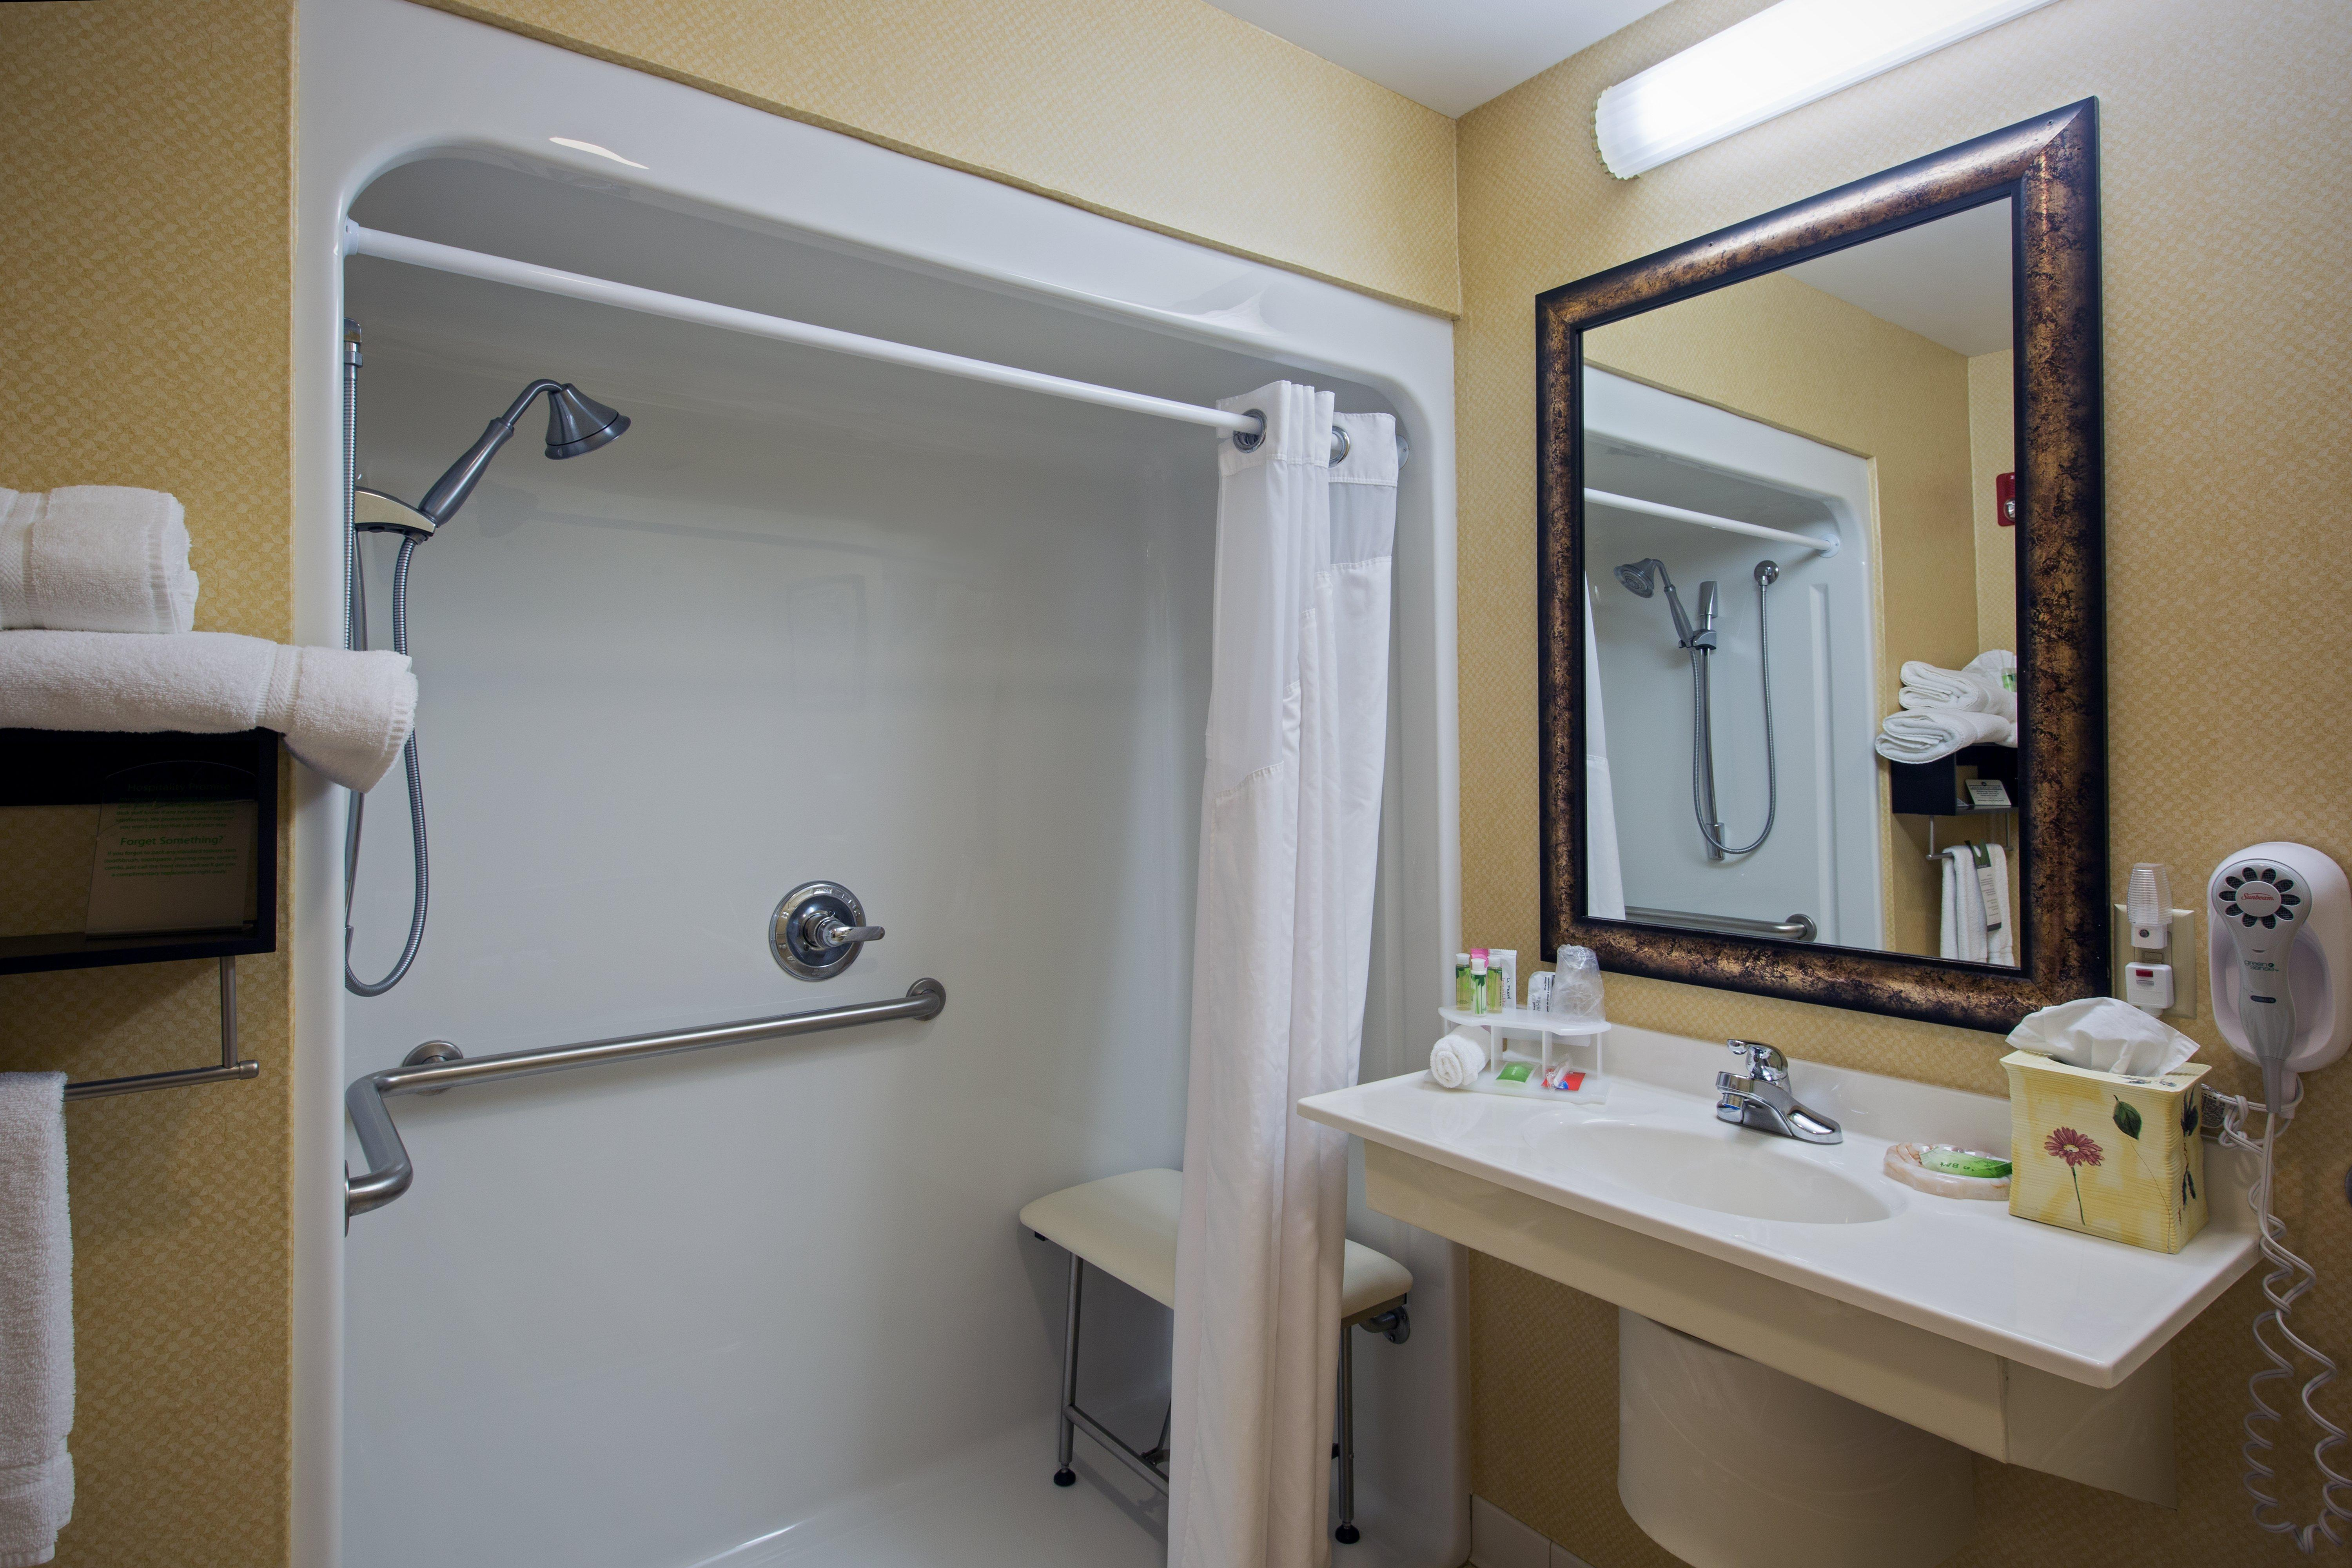 Holiday Inn Express and Suites Youngstown N Warren, Trumbull